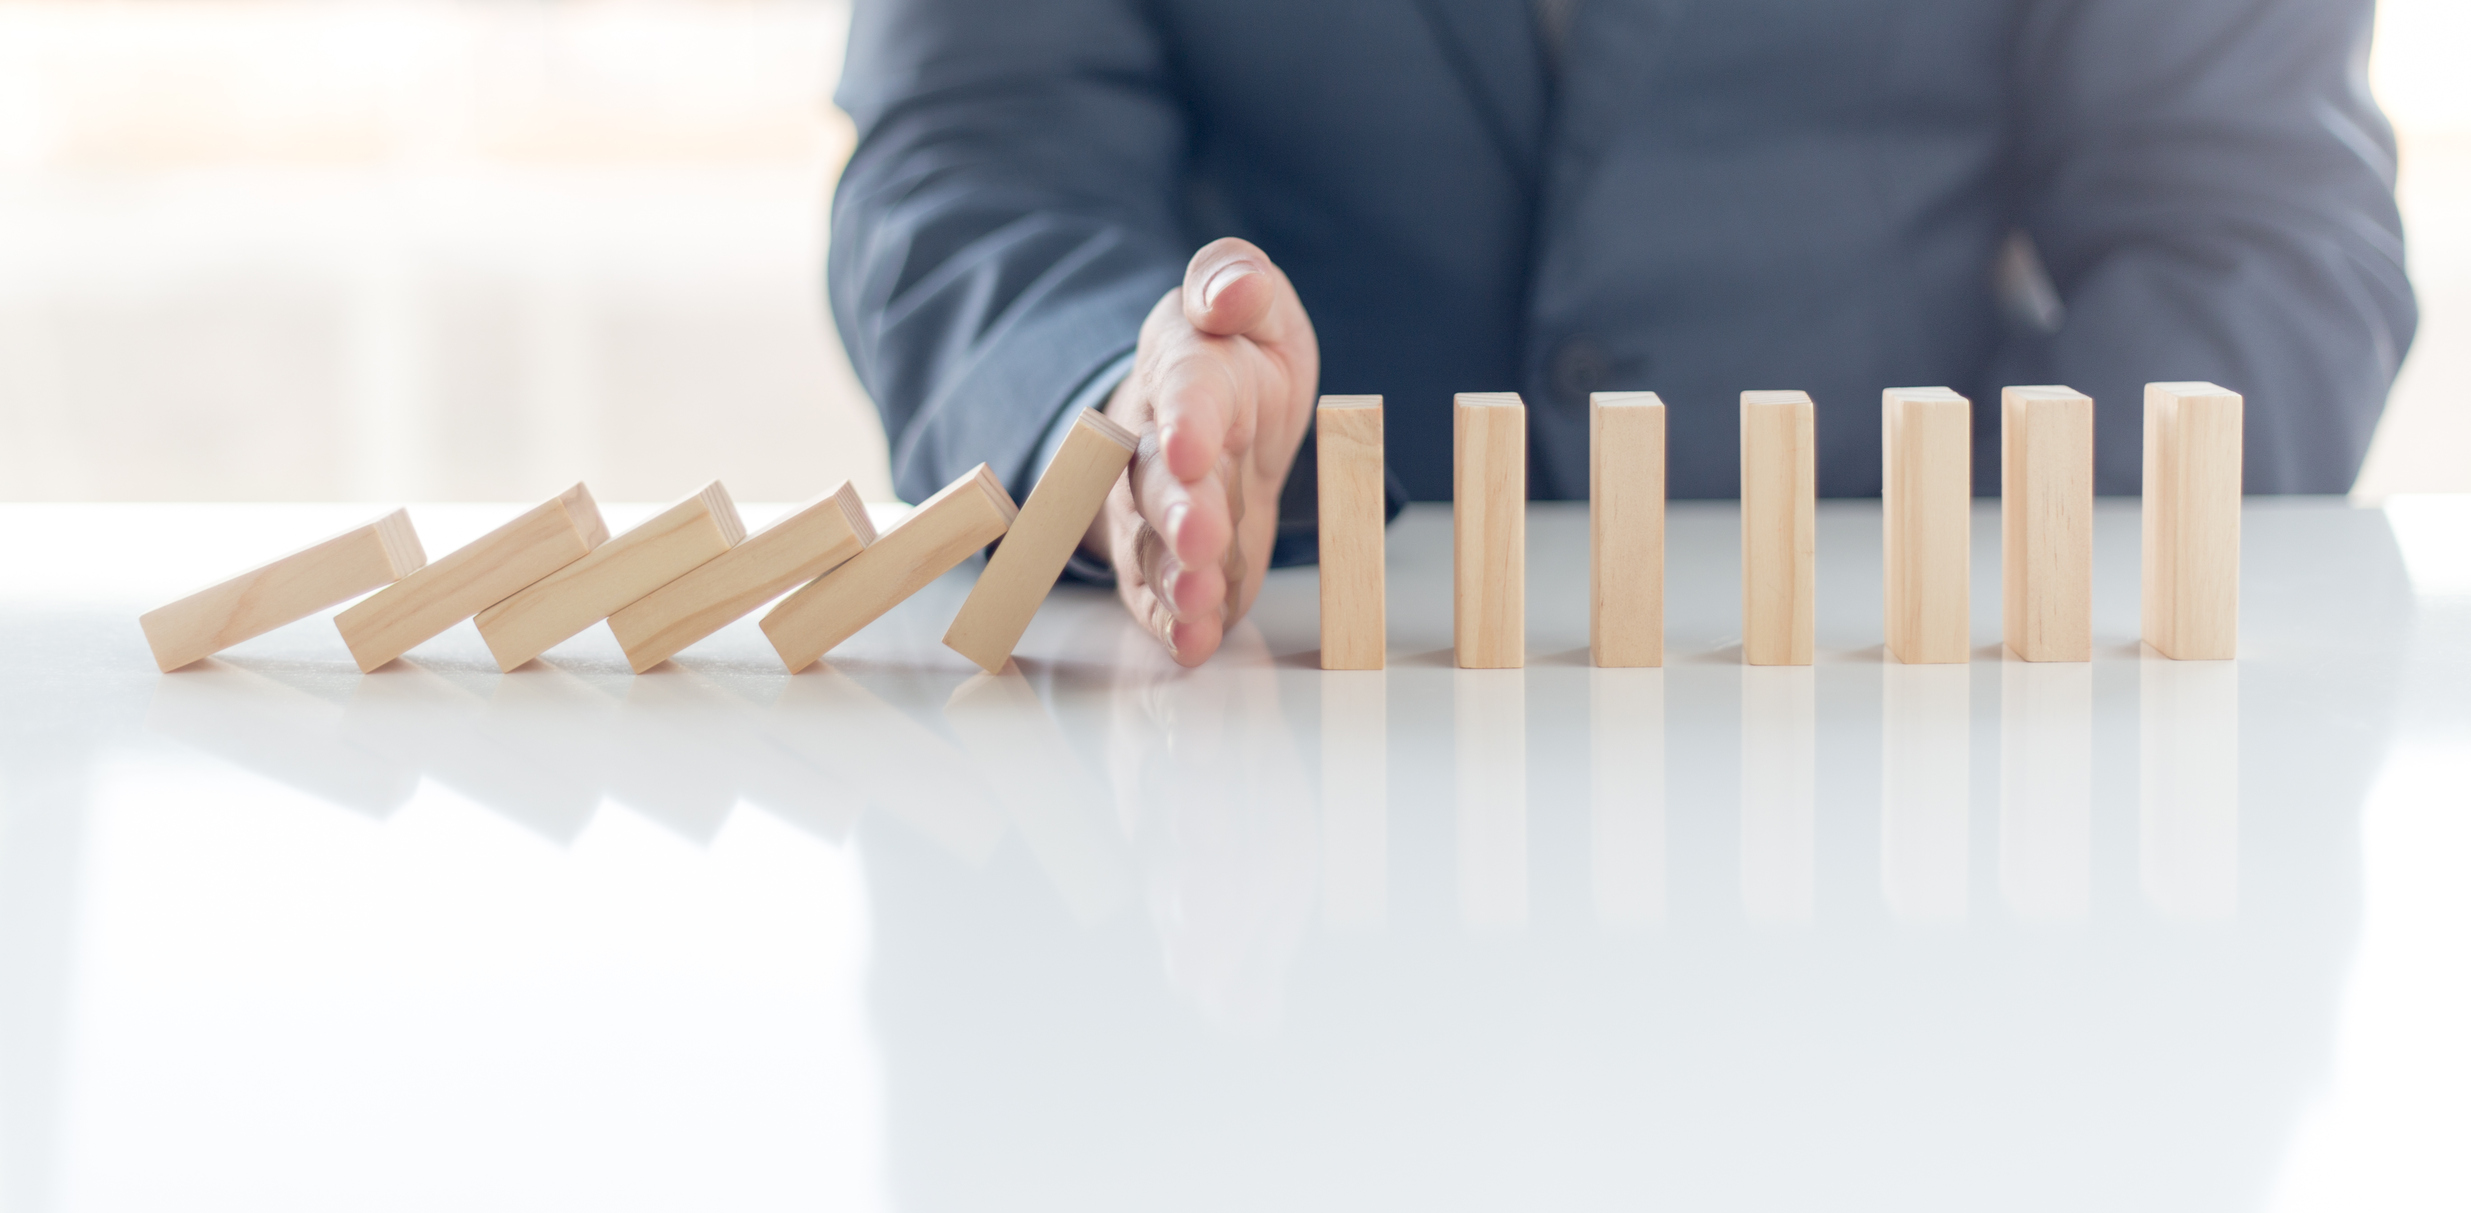 5 Ways to Keep Leadership Involved Without Slowing Your Process